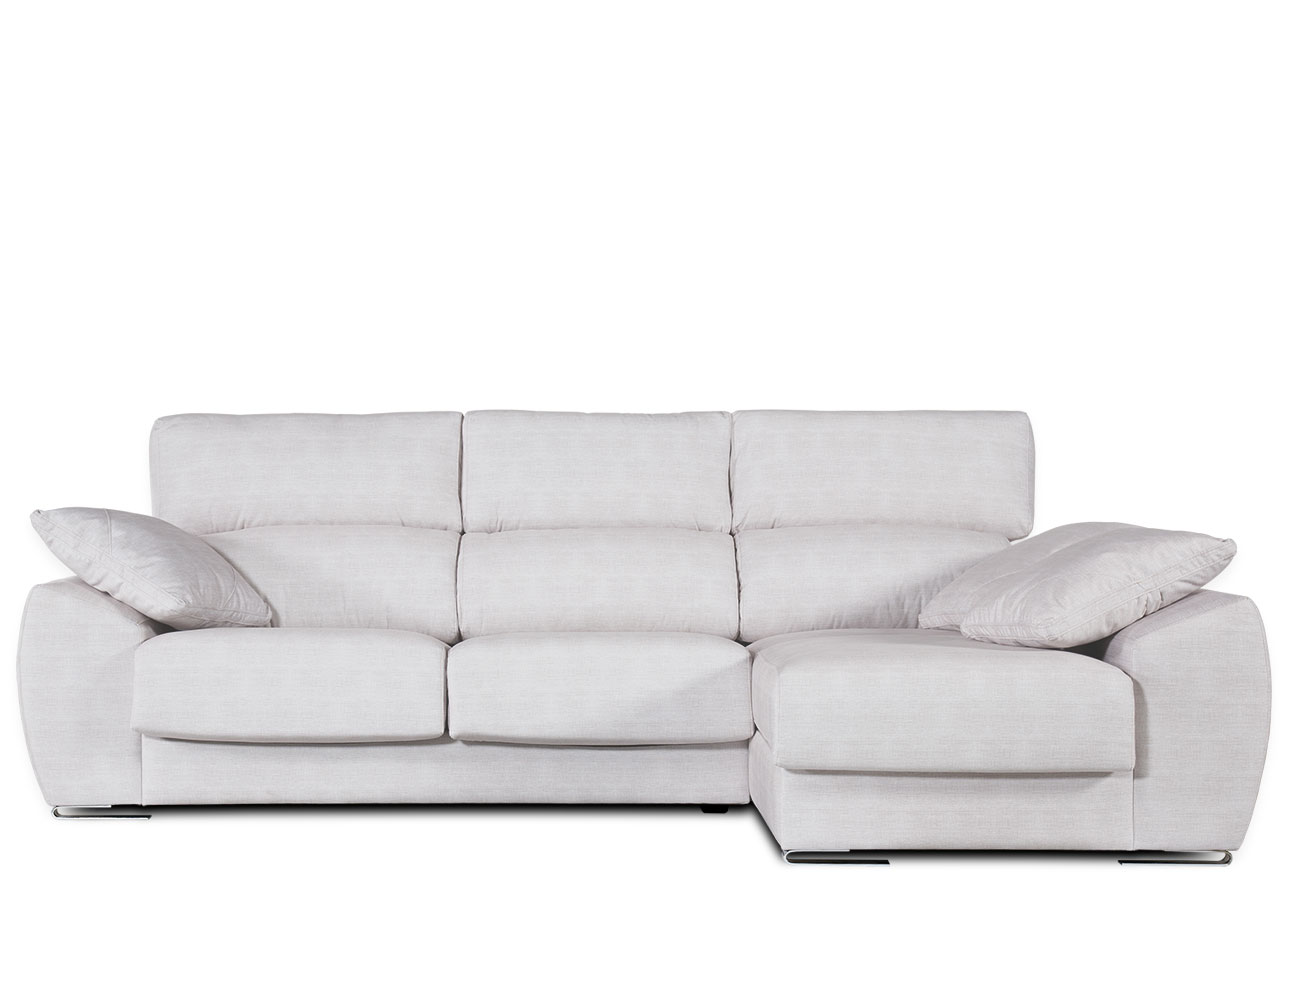 Sofa chaiselongue moderno blanco1